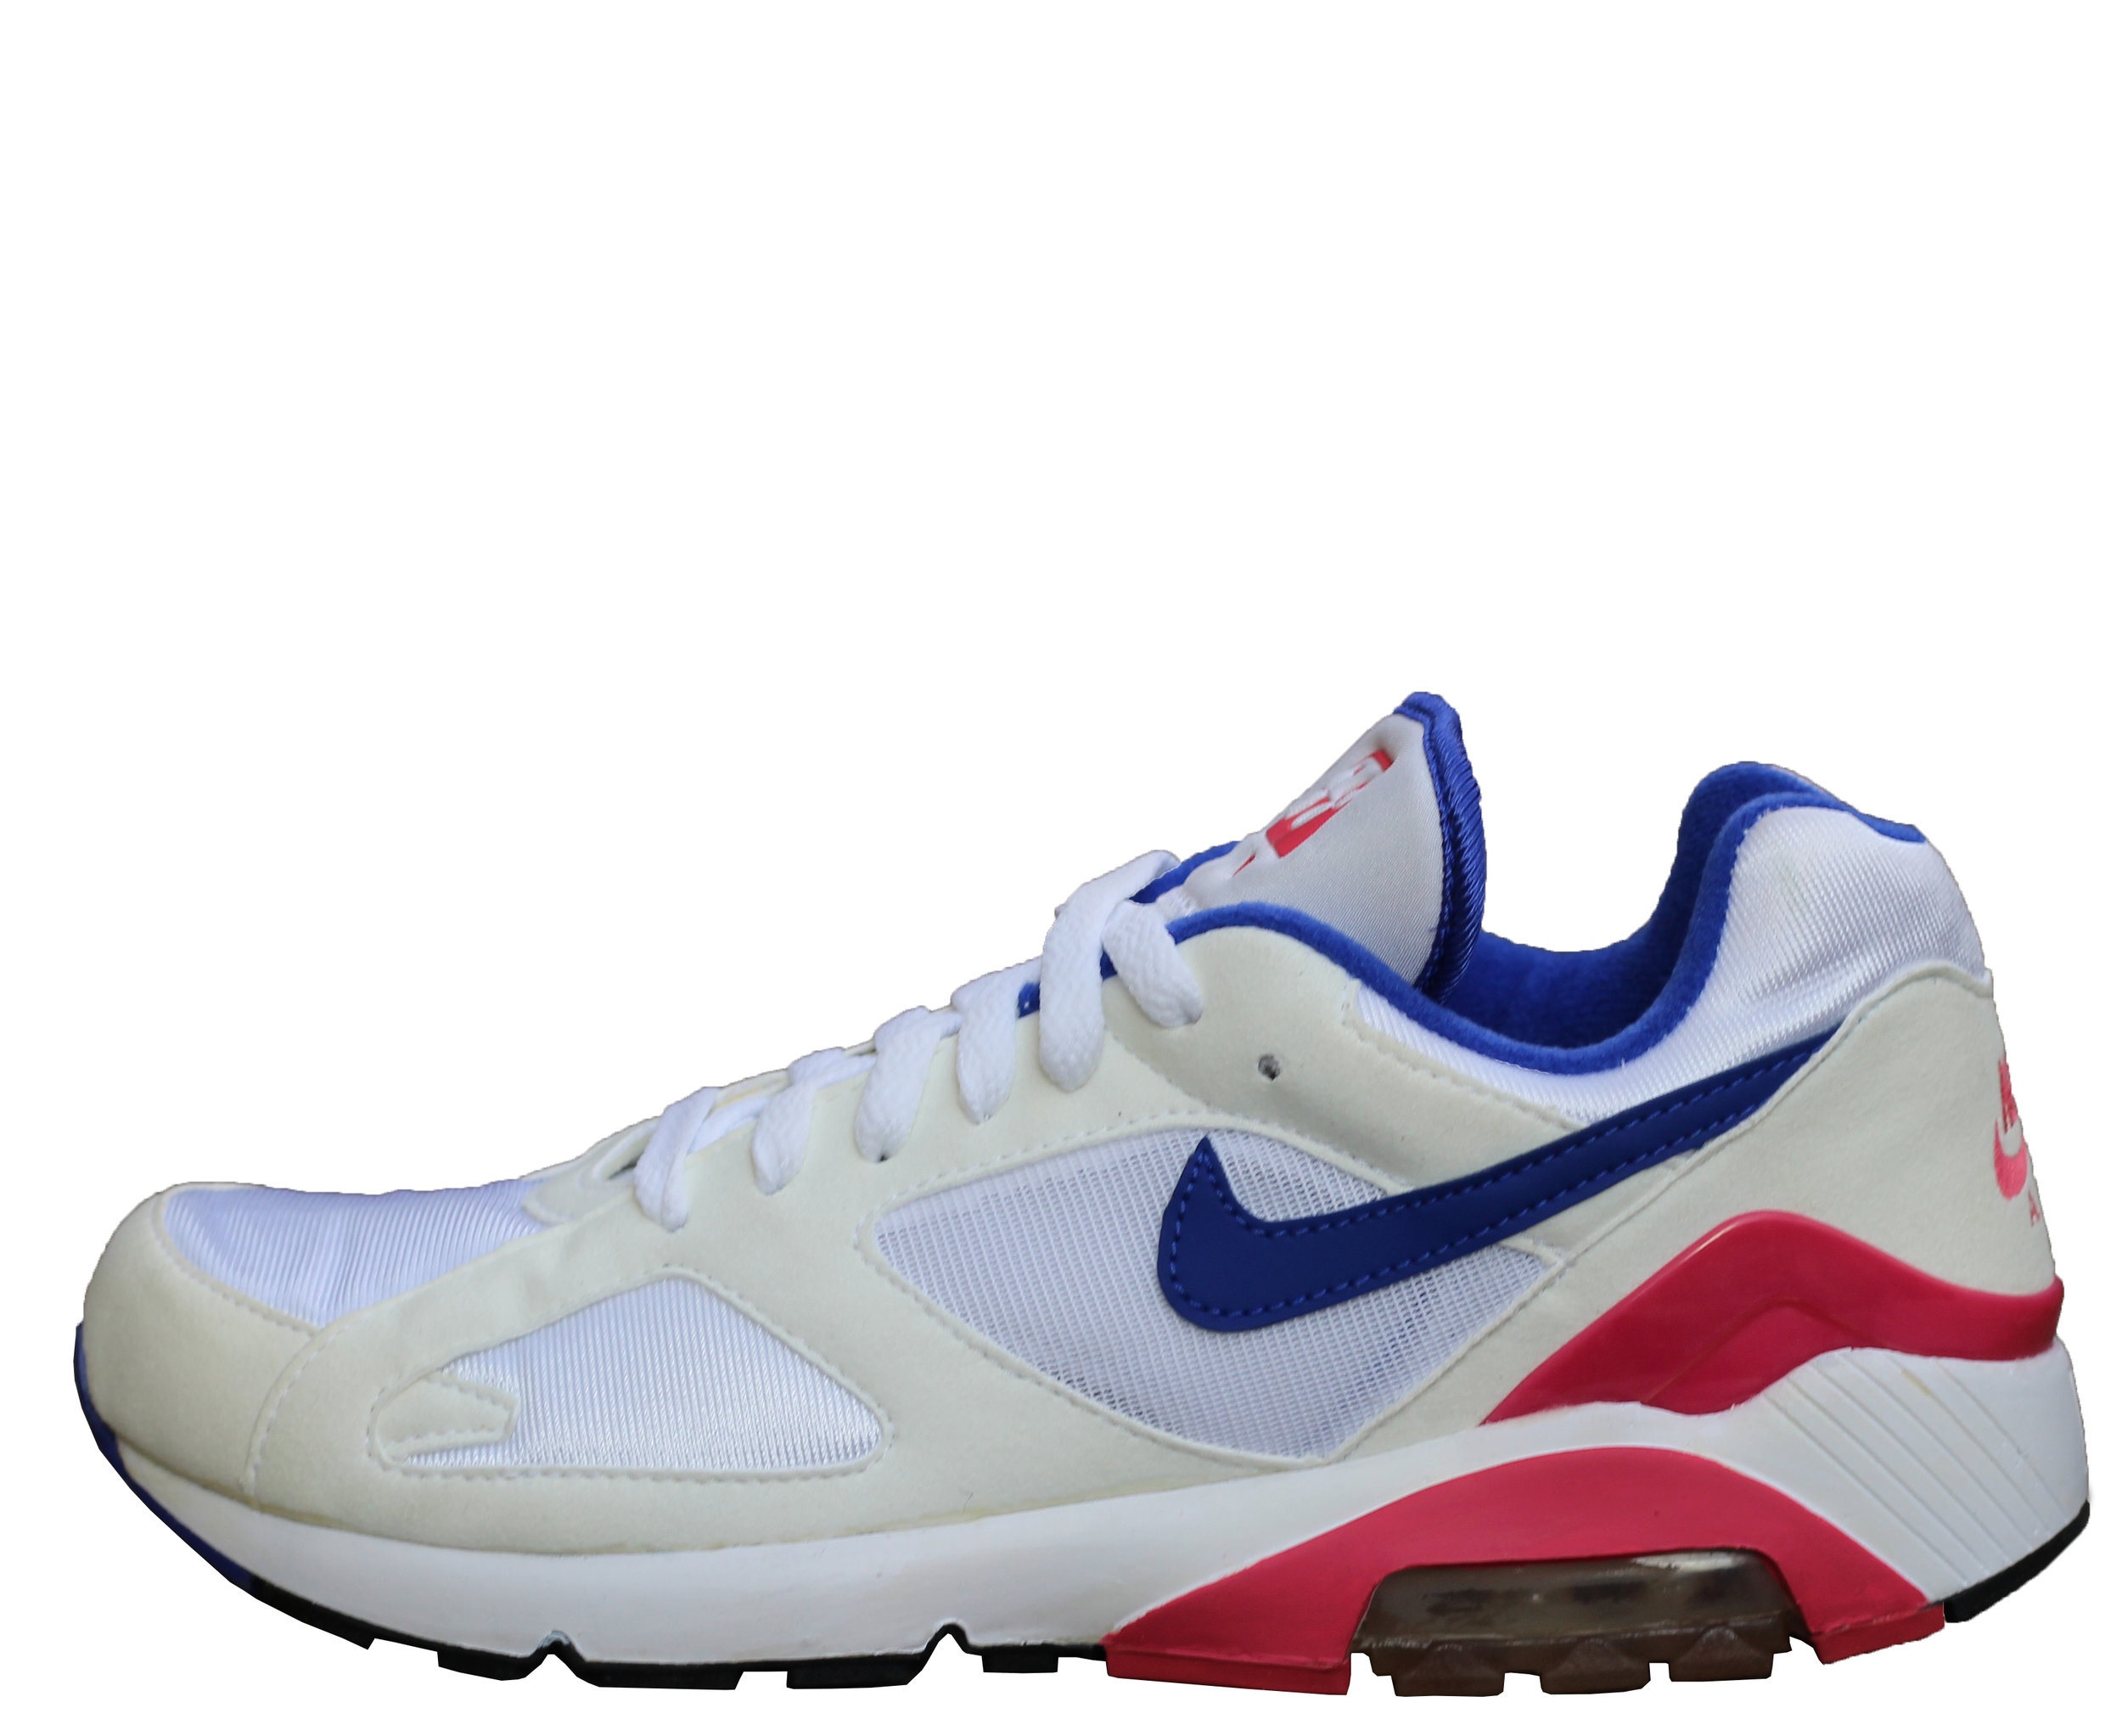 Nike Air Max 180 Ultramarine HOA (Size 8) DS — Roots